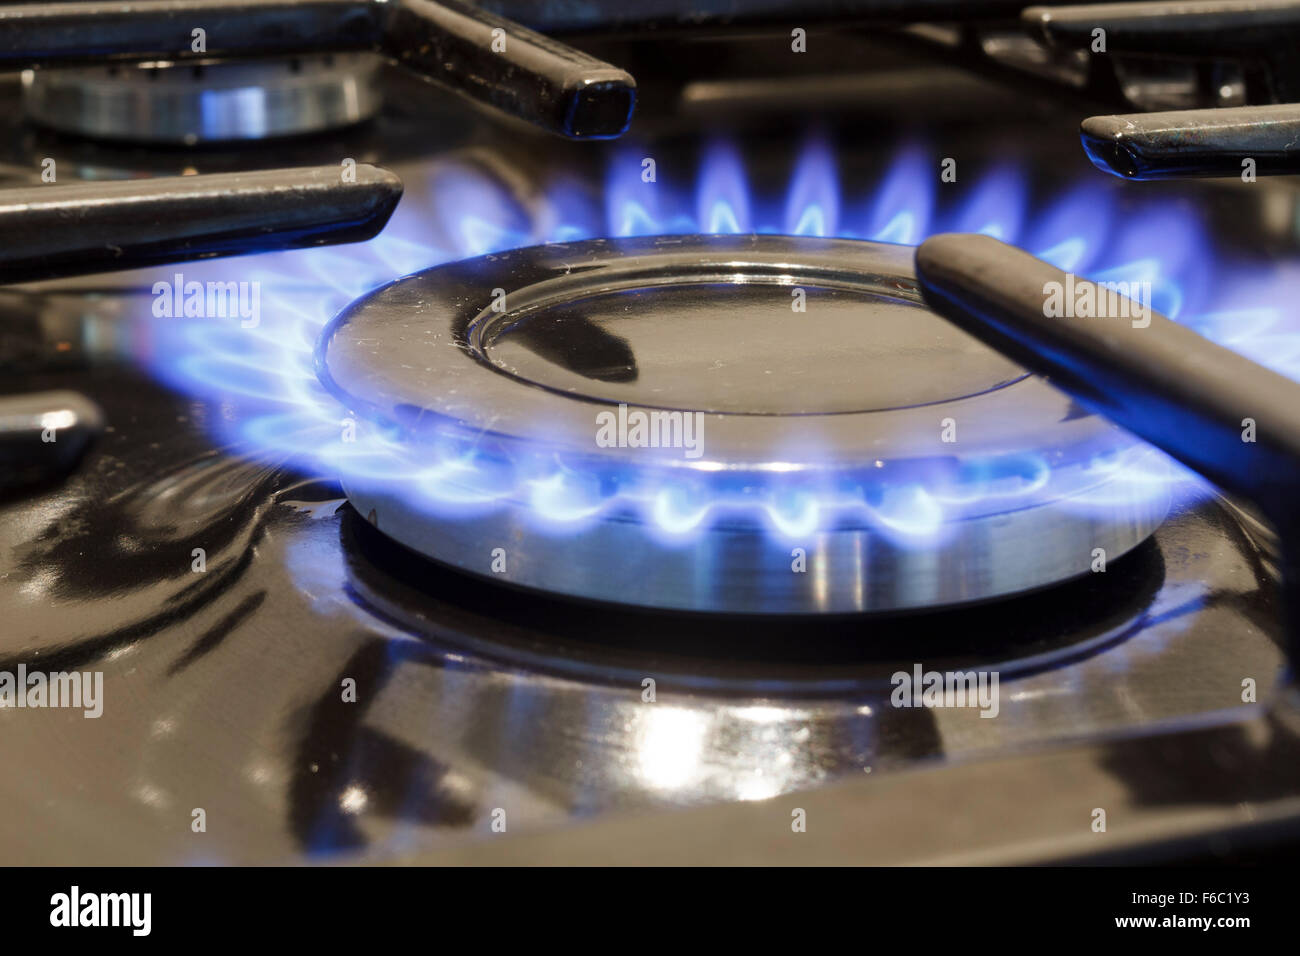 Gas flame on a cooker hob - Stock Image